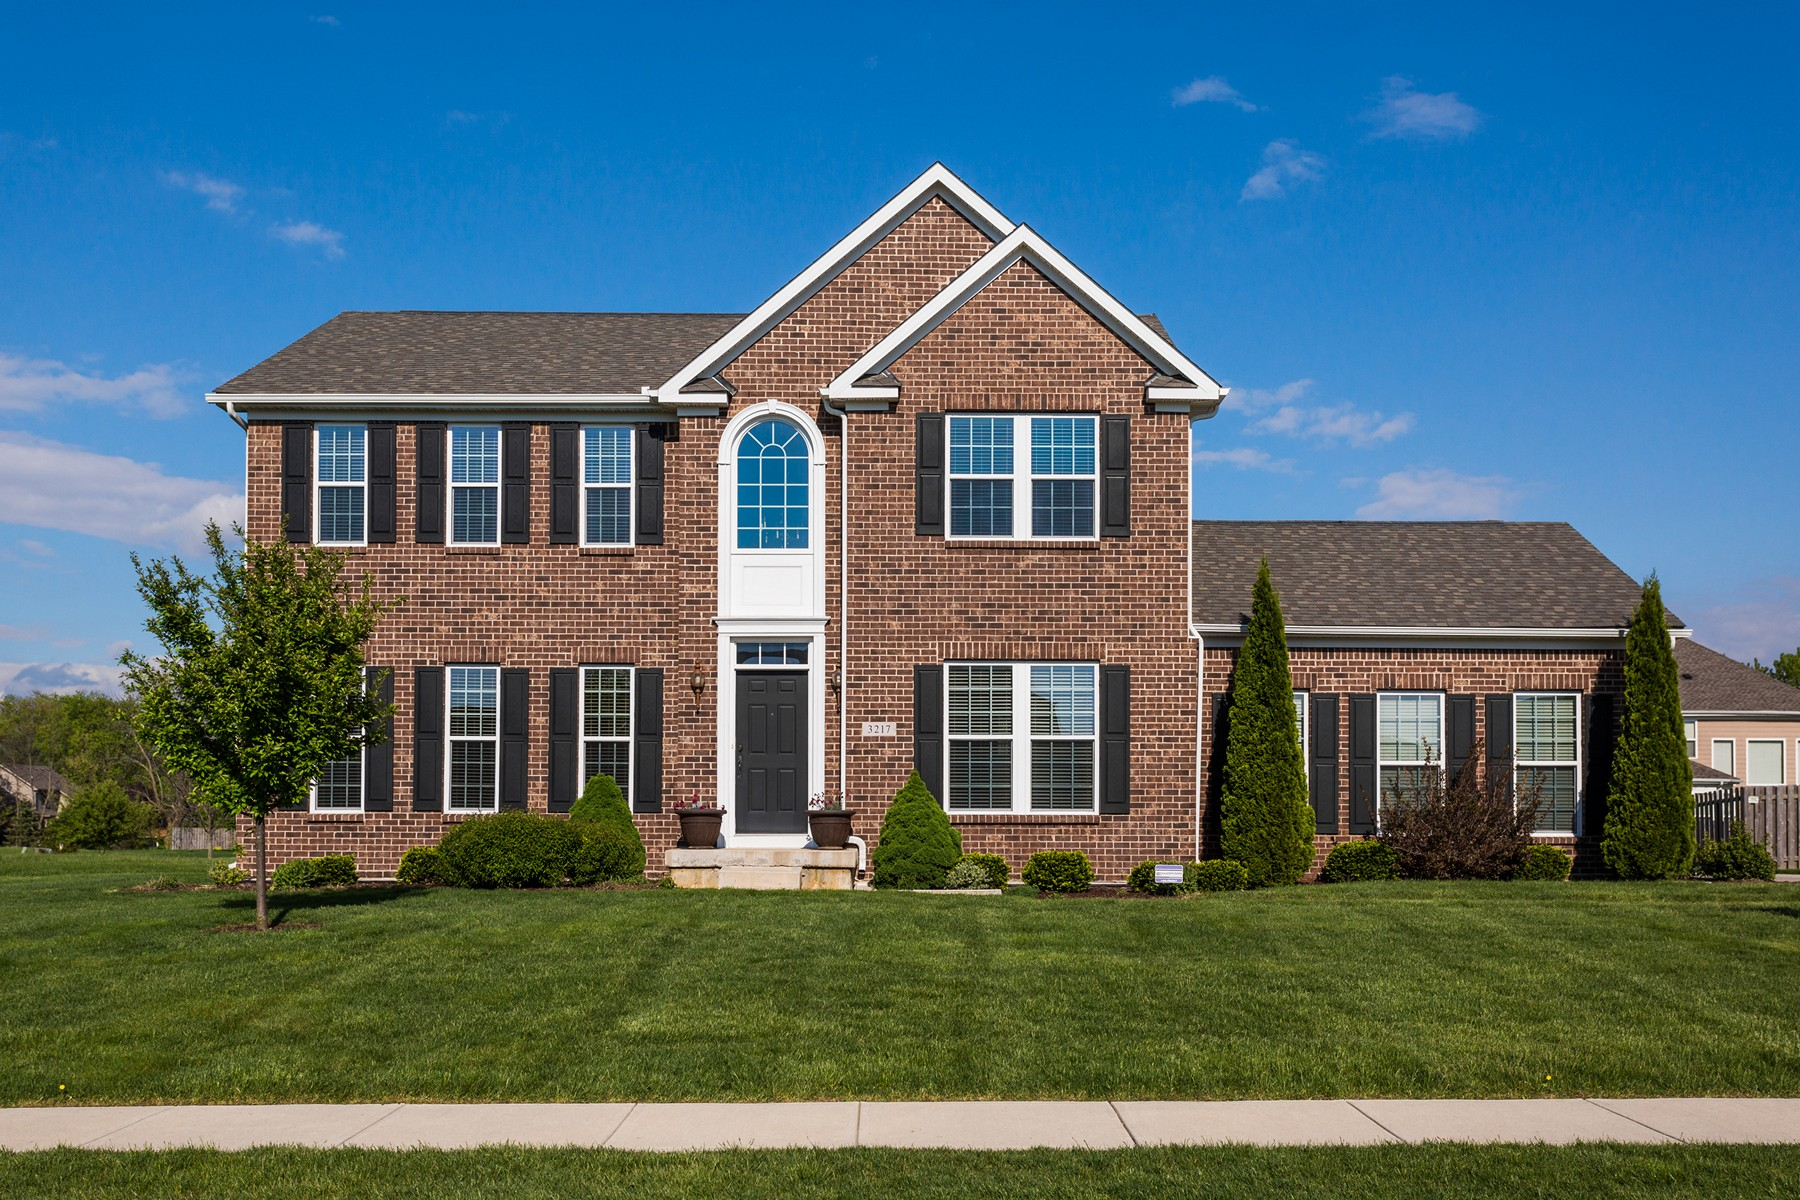 Villa per Vendita alle ore Immaculate Willow Glen Home 3217 Purple Ash Drive Zionsville, Indiana, 46077 Stati Uniti